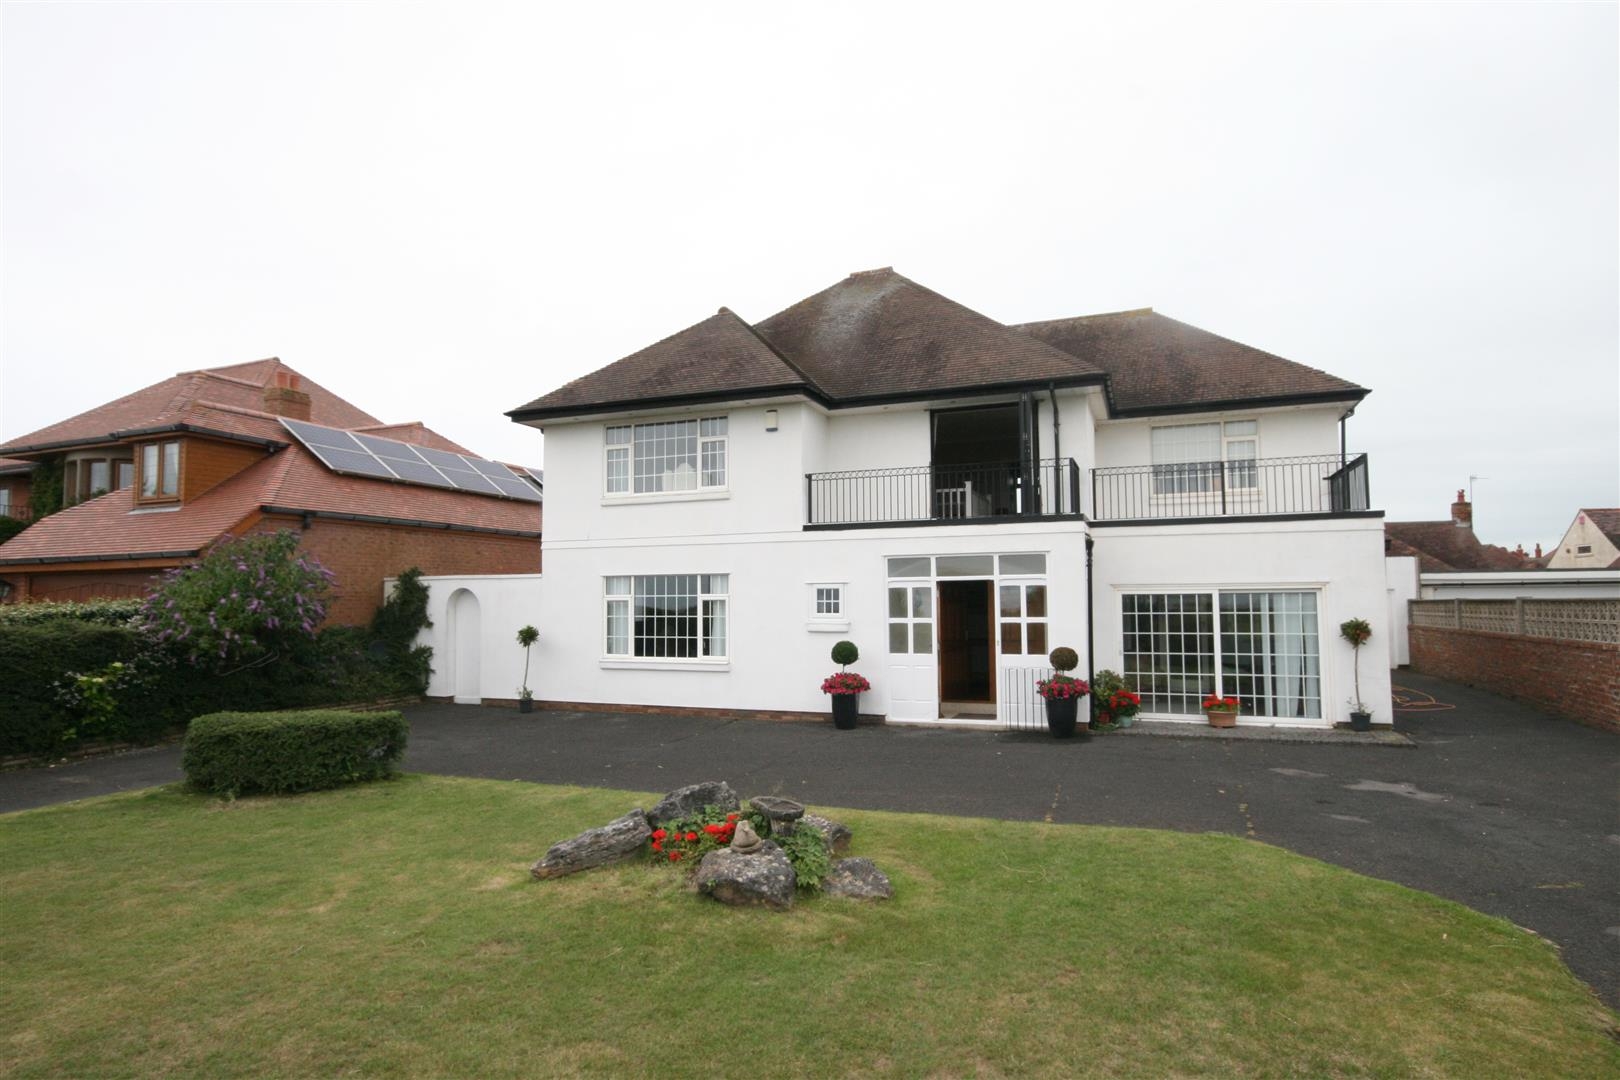 4 Bedrooms Detached House for sale in Inner Promenade, Lytham St. Annes